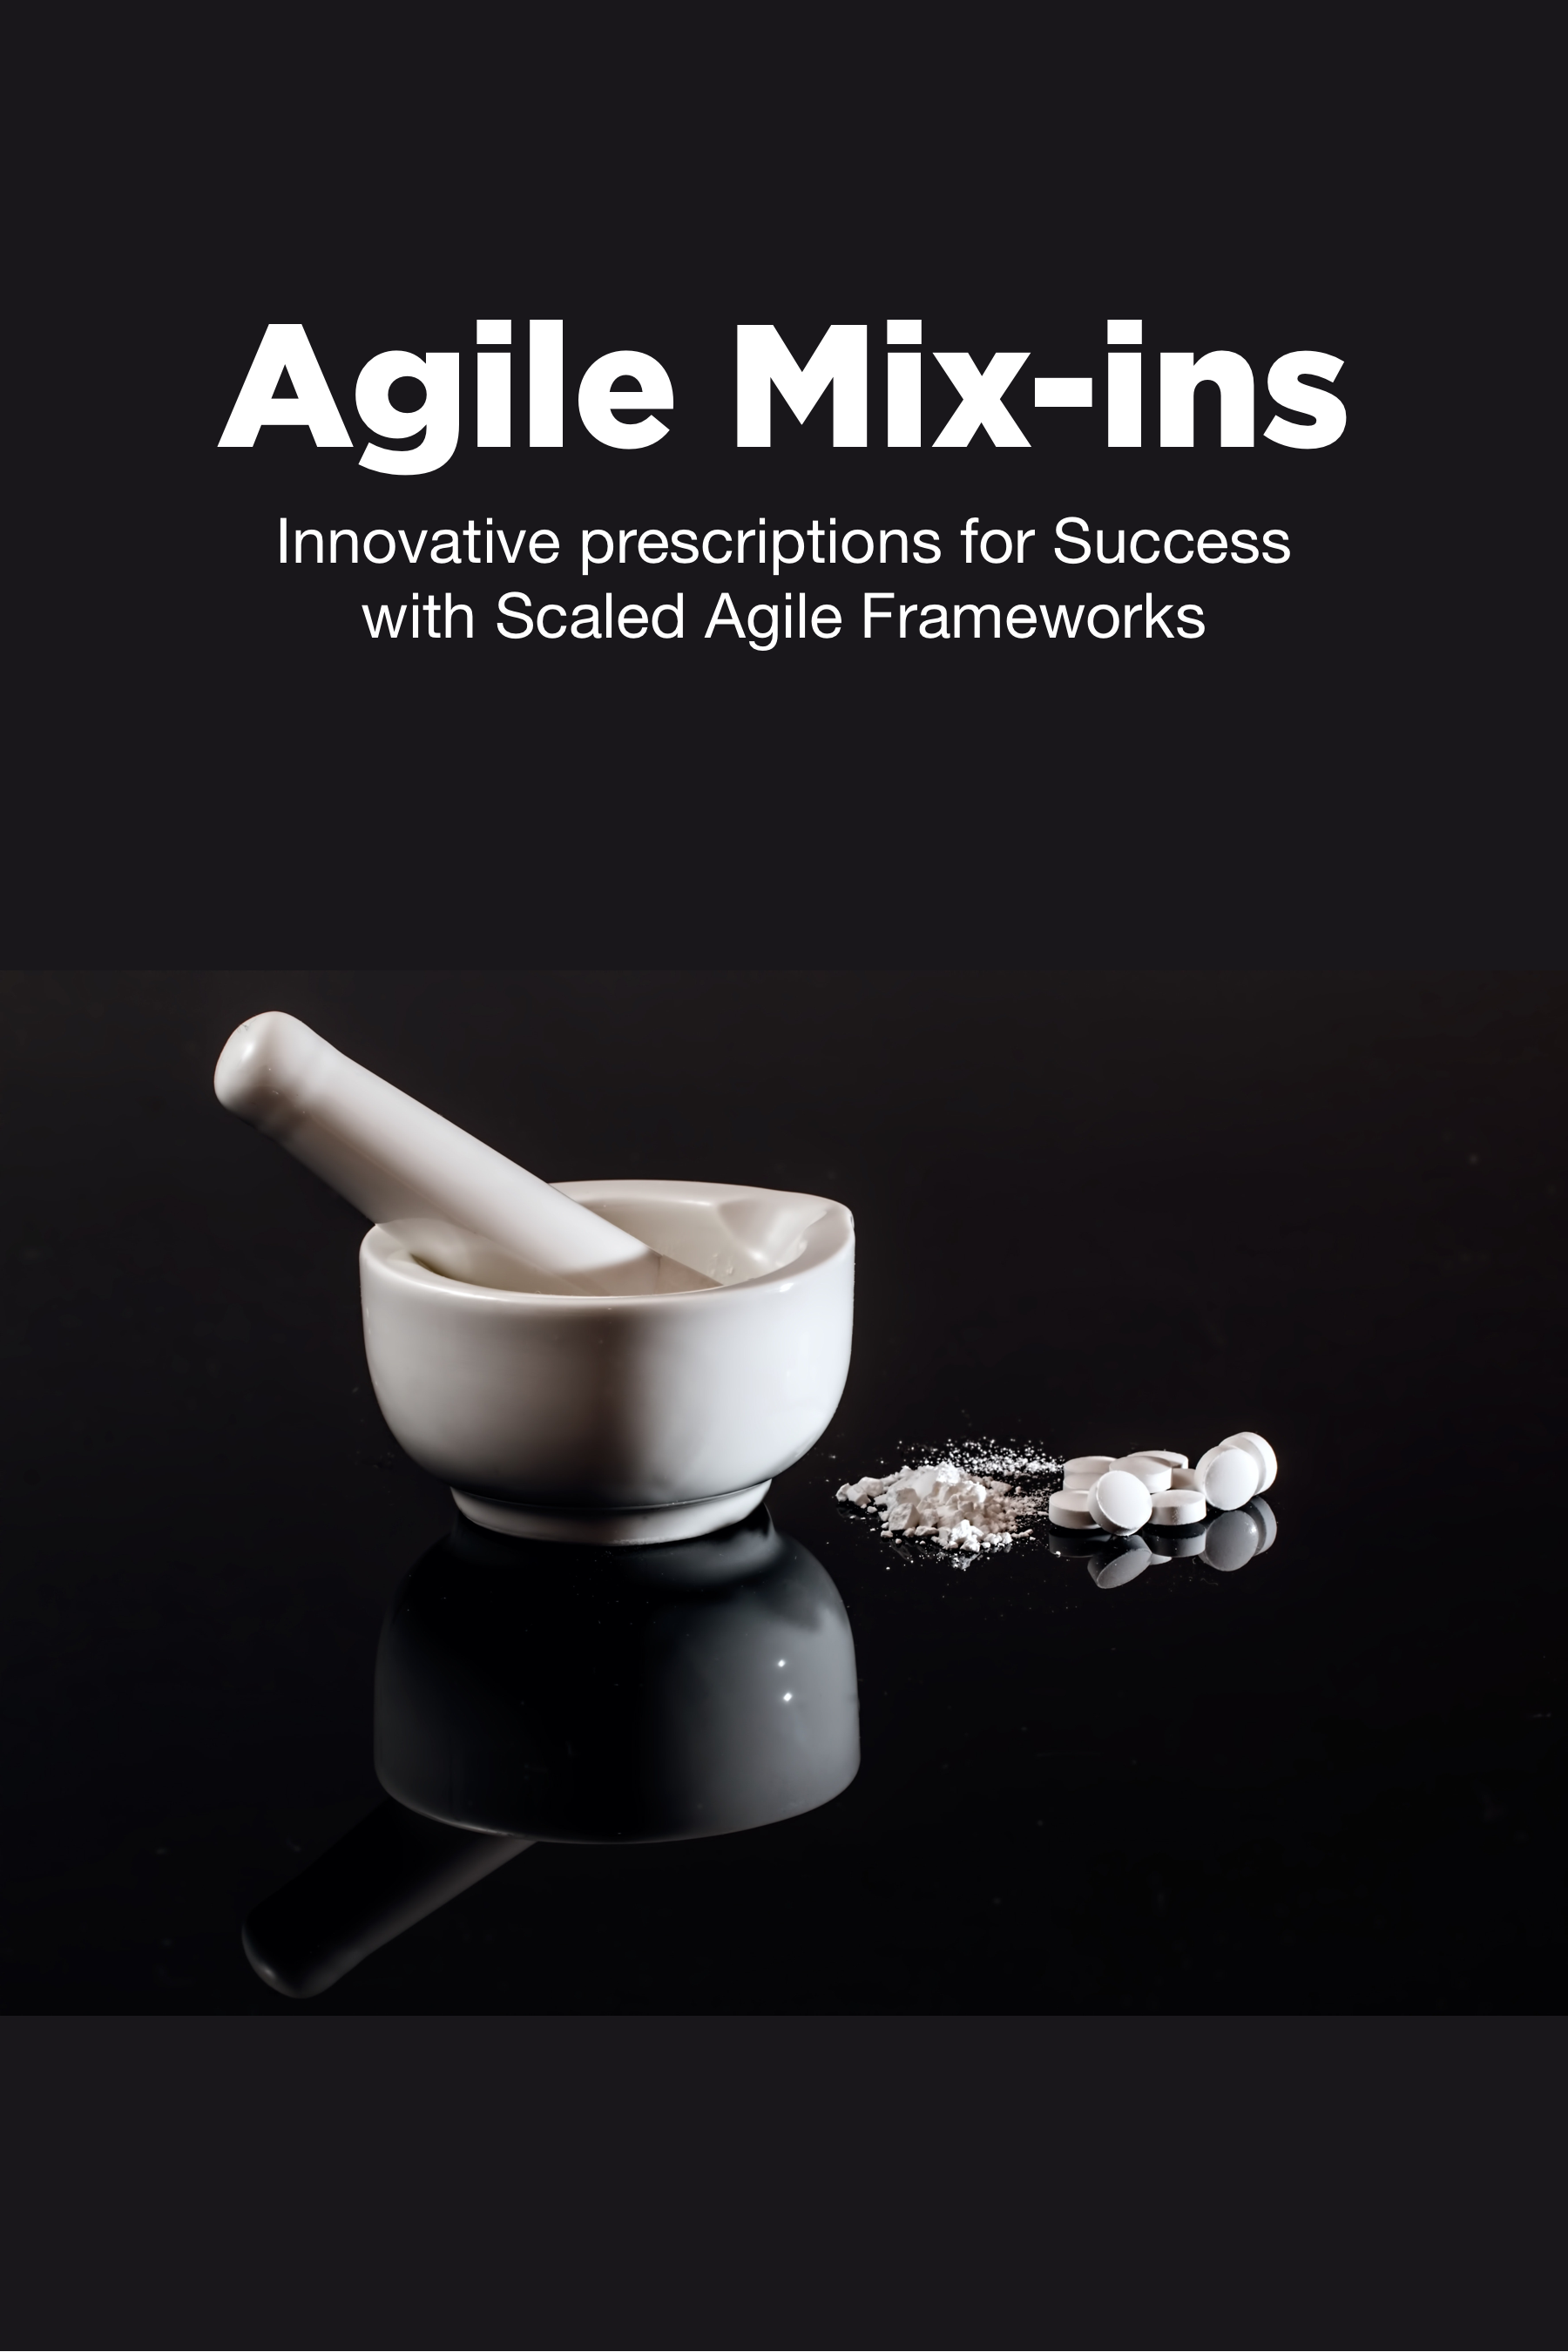 Intro to Agile Mix-ins